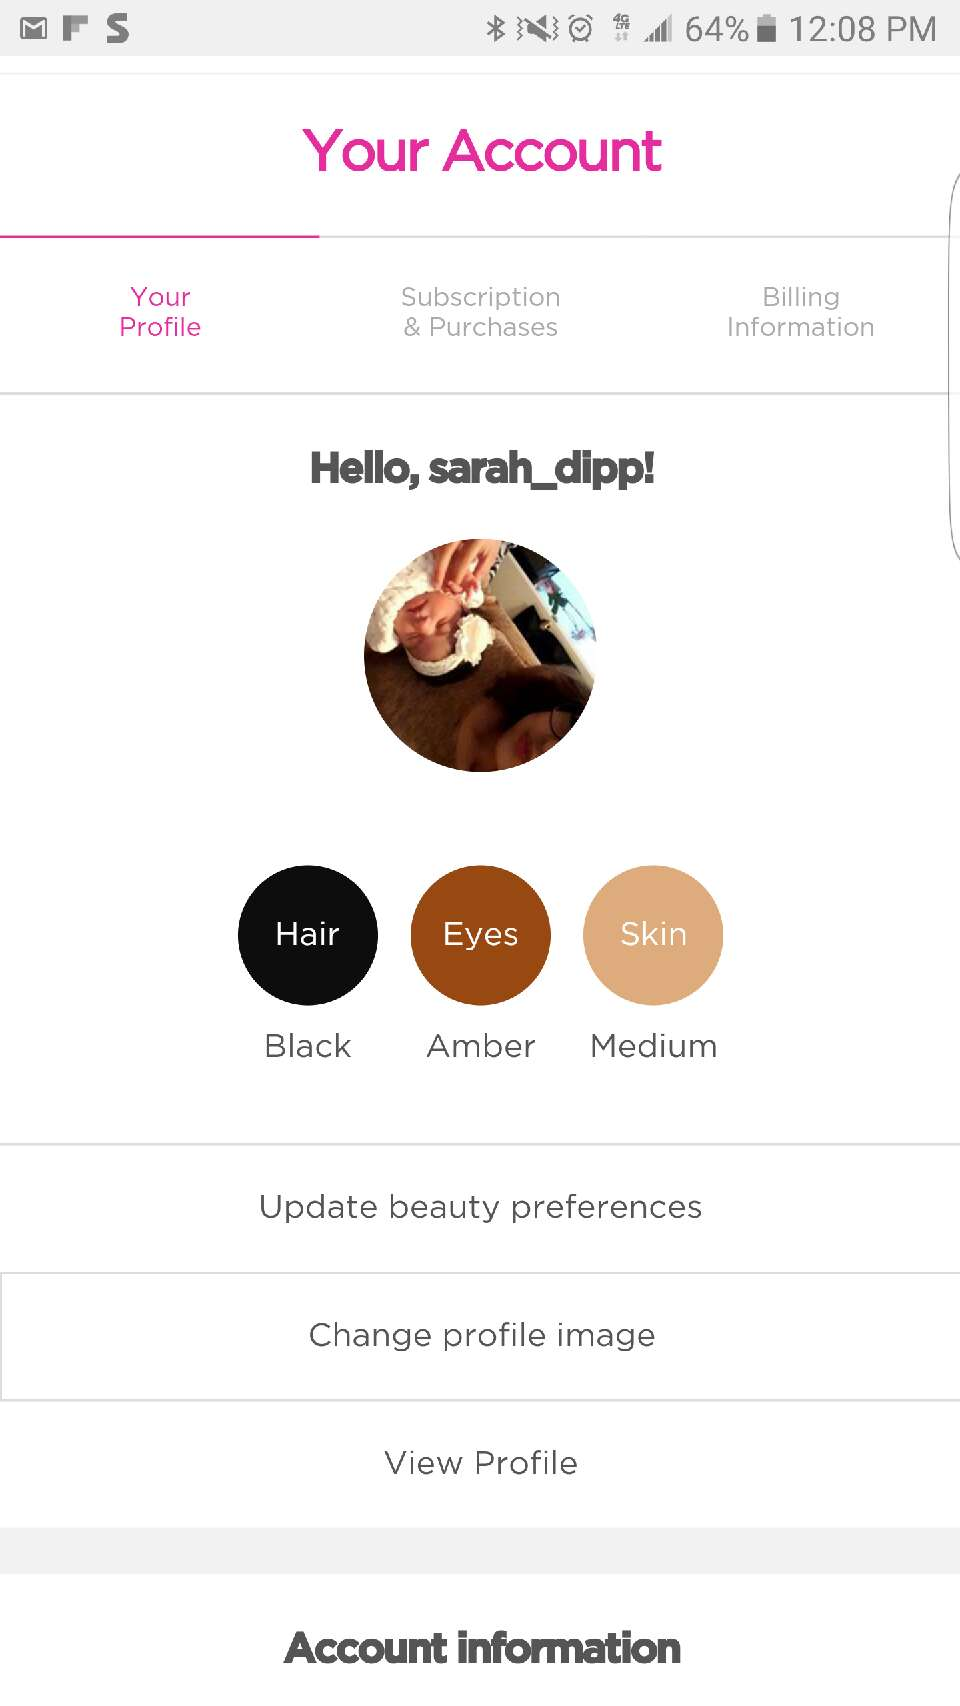 When you join Ipsy, for a little over $10/month you get to try great makeup brands all set to the what you like on your profile! Be sure to use my referral code! https: //www.ipsy.com/new?cid=ppage_ref&sid=link&refer=101b5k thanks!